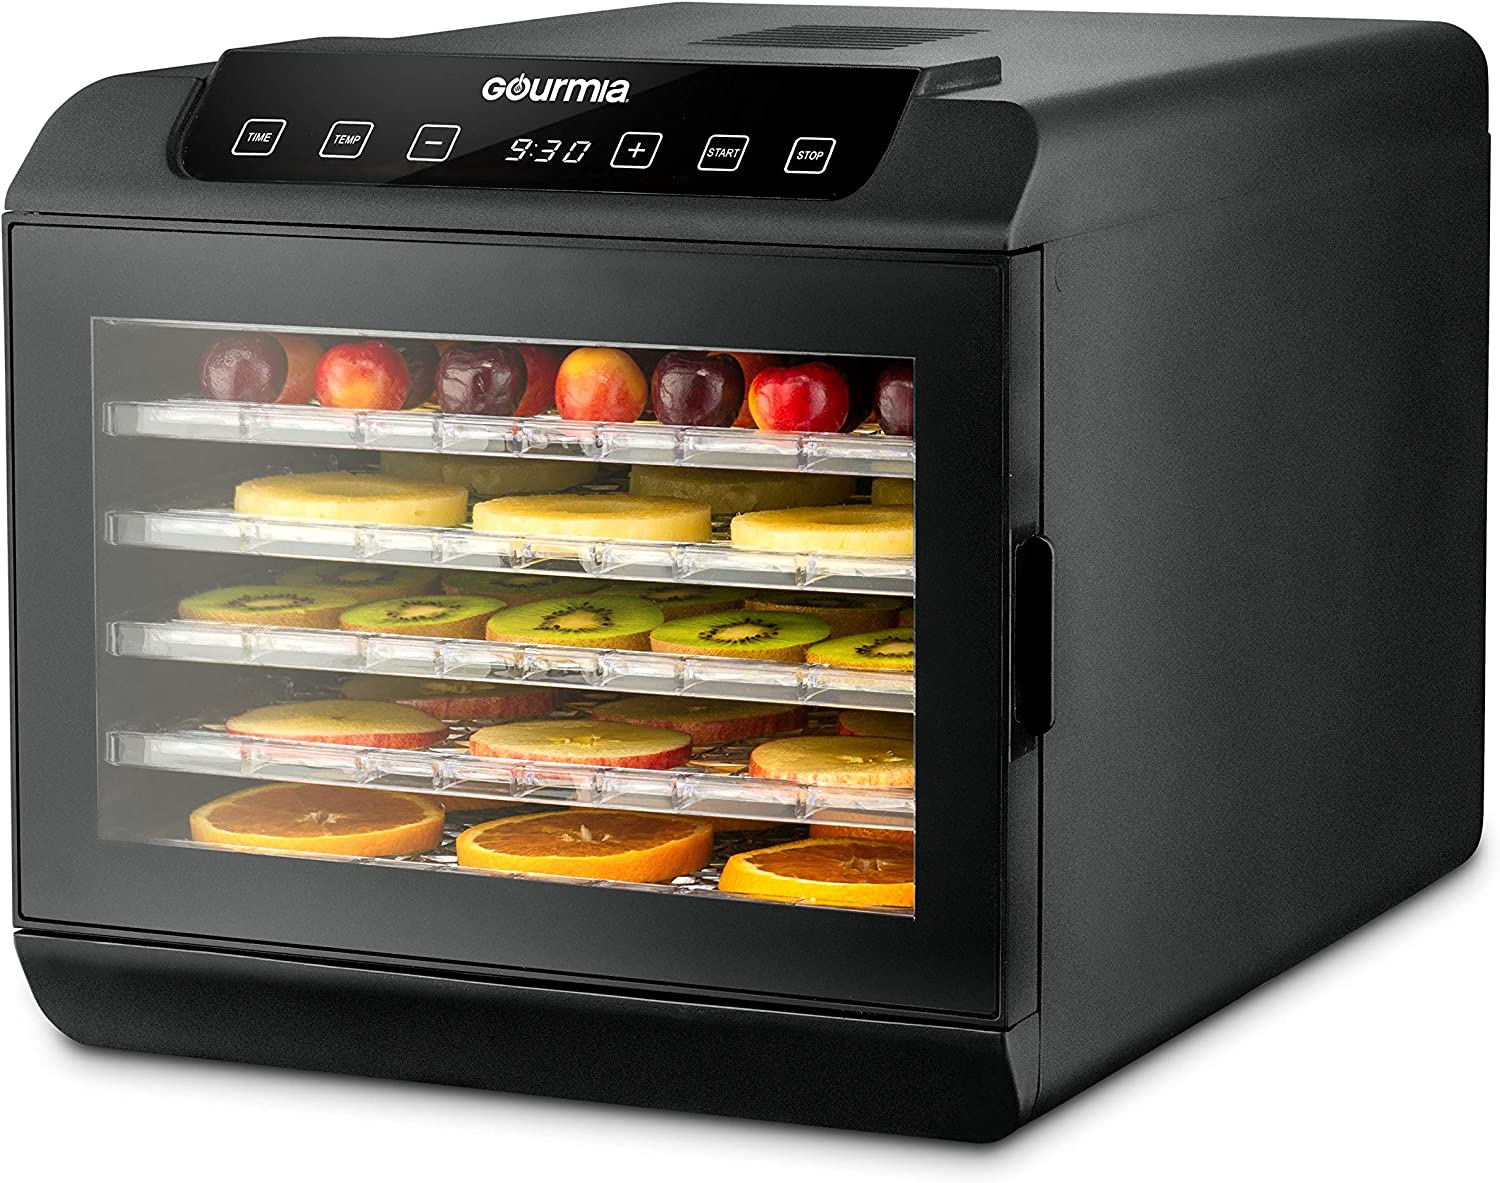 Gourmia GFD1680 Countertop Electric Food Dehydrator - 6 Drying Trays - Digital Countdown Timer - Preset Temperature Settings - Recipe Book Included